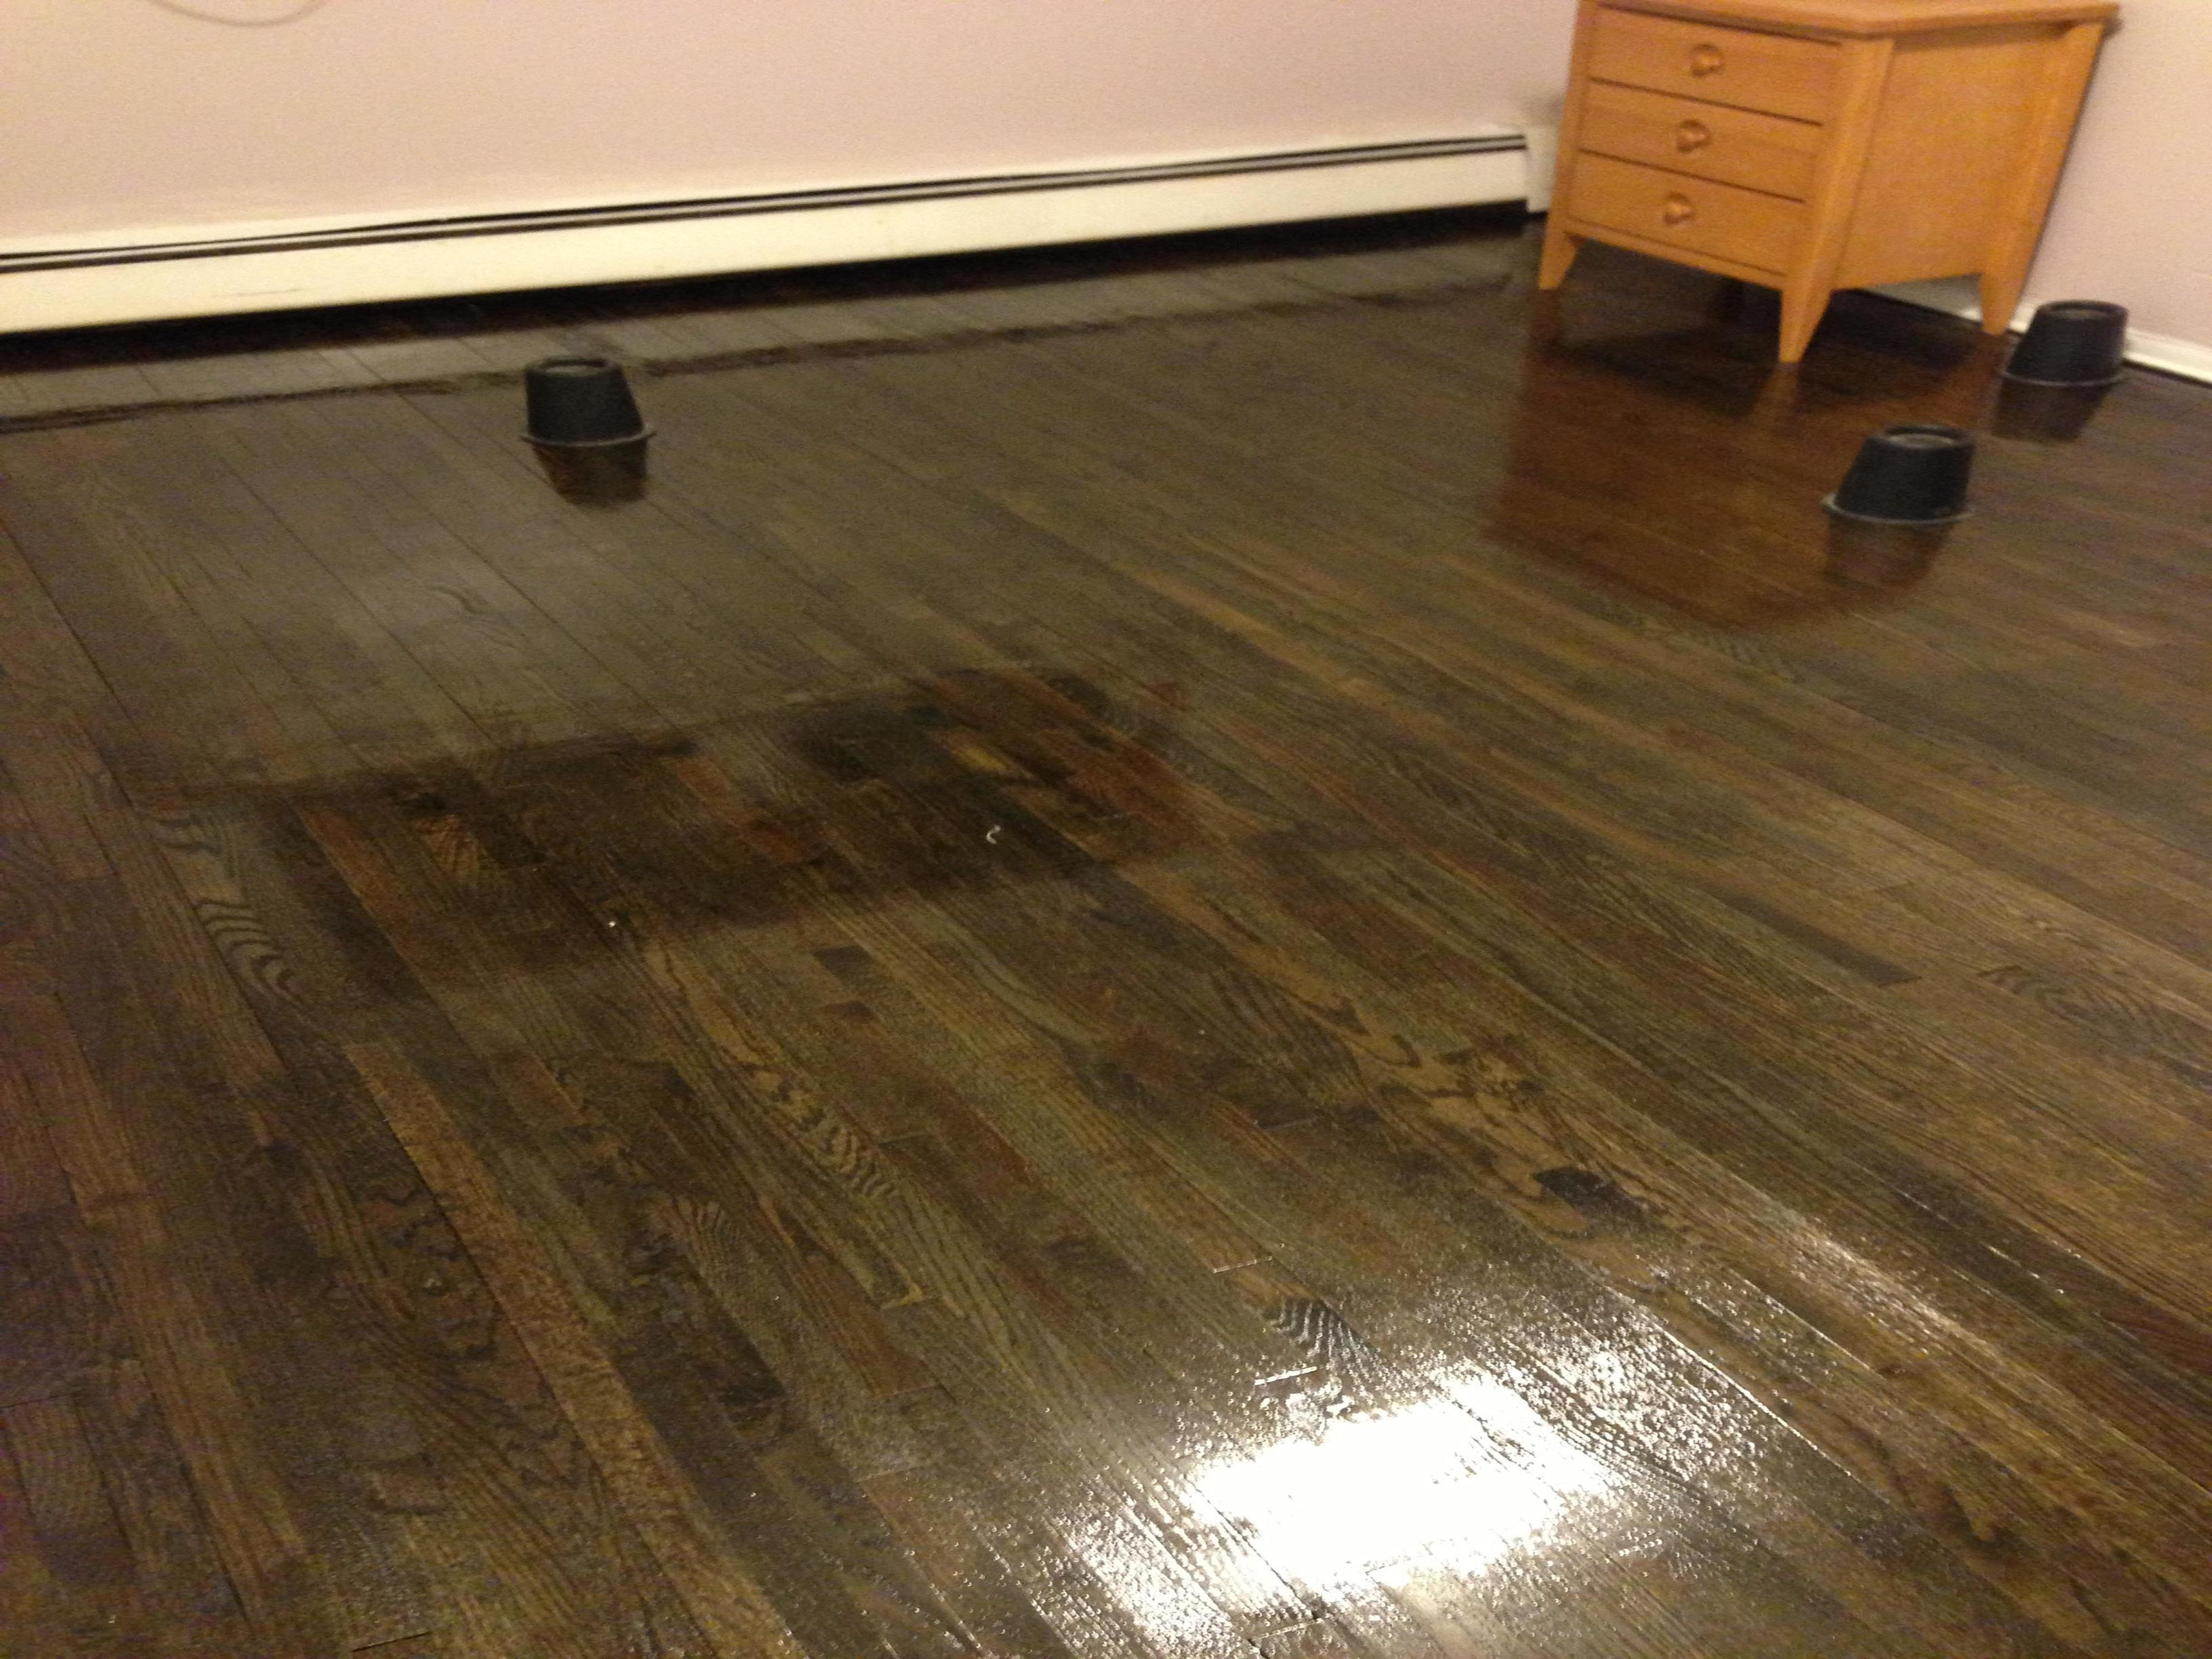 franks floors and refinishing in bronx ny 10462